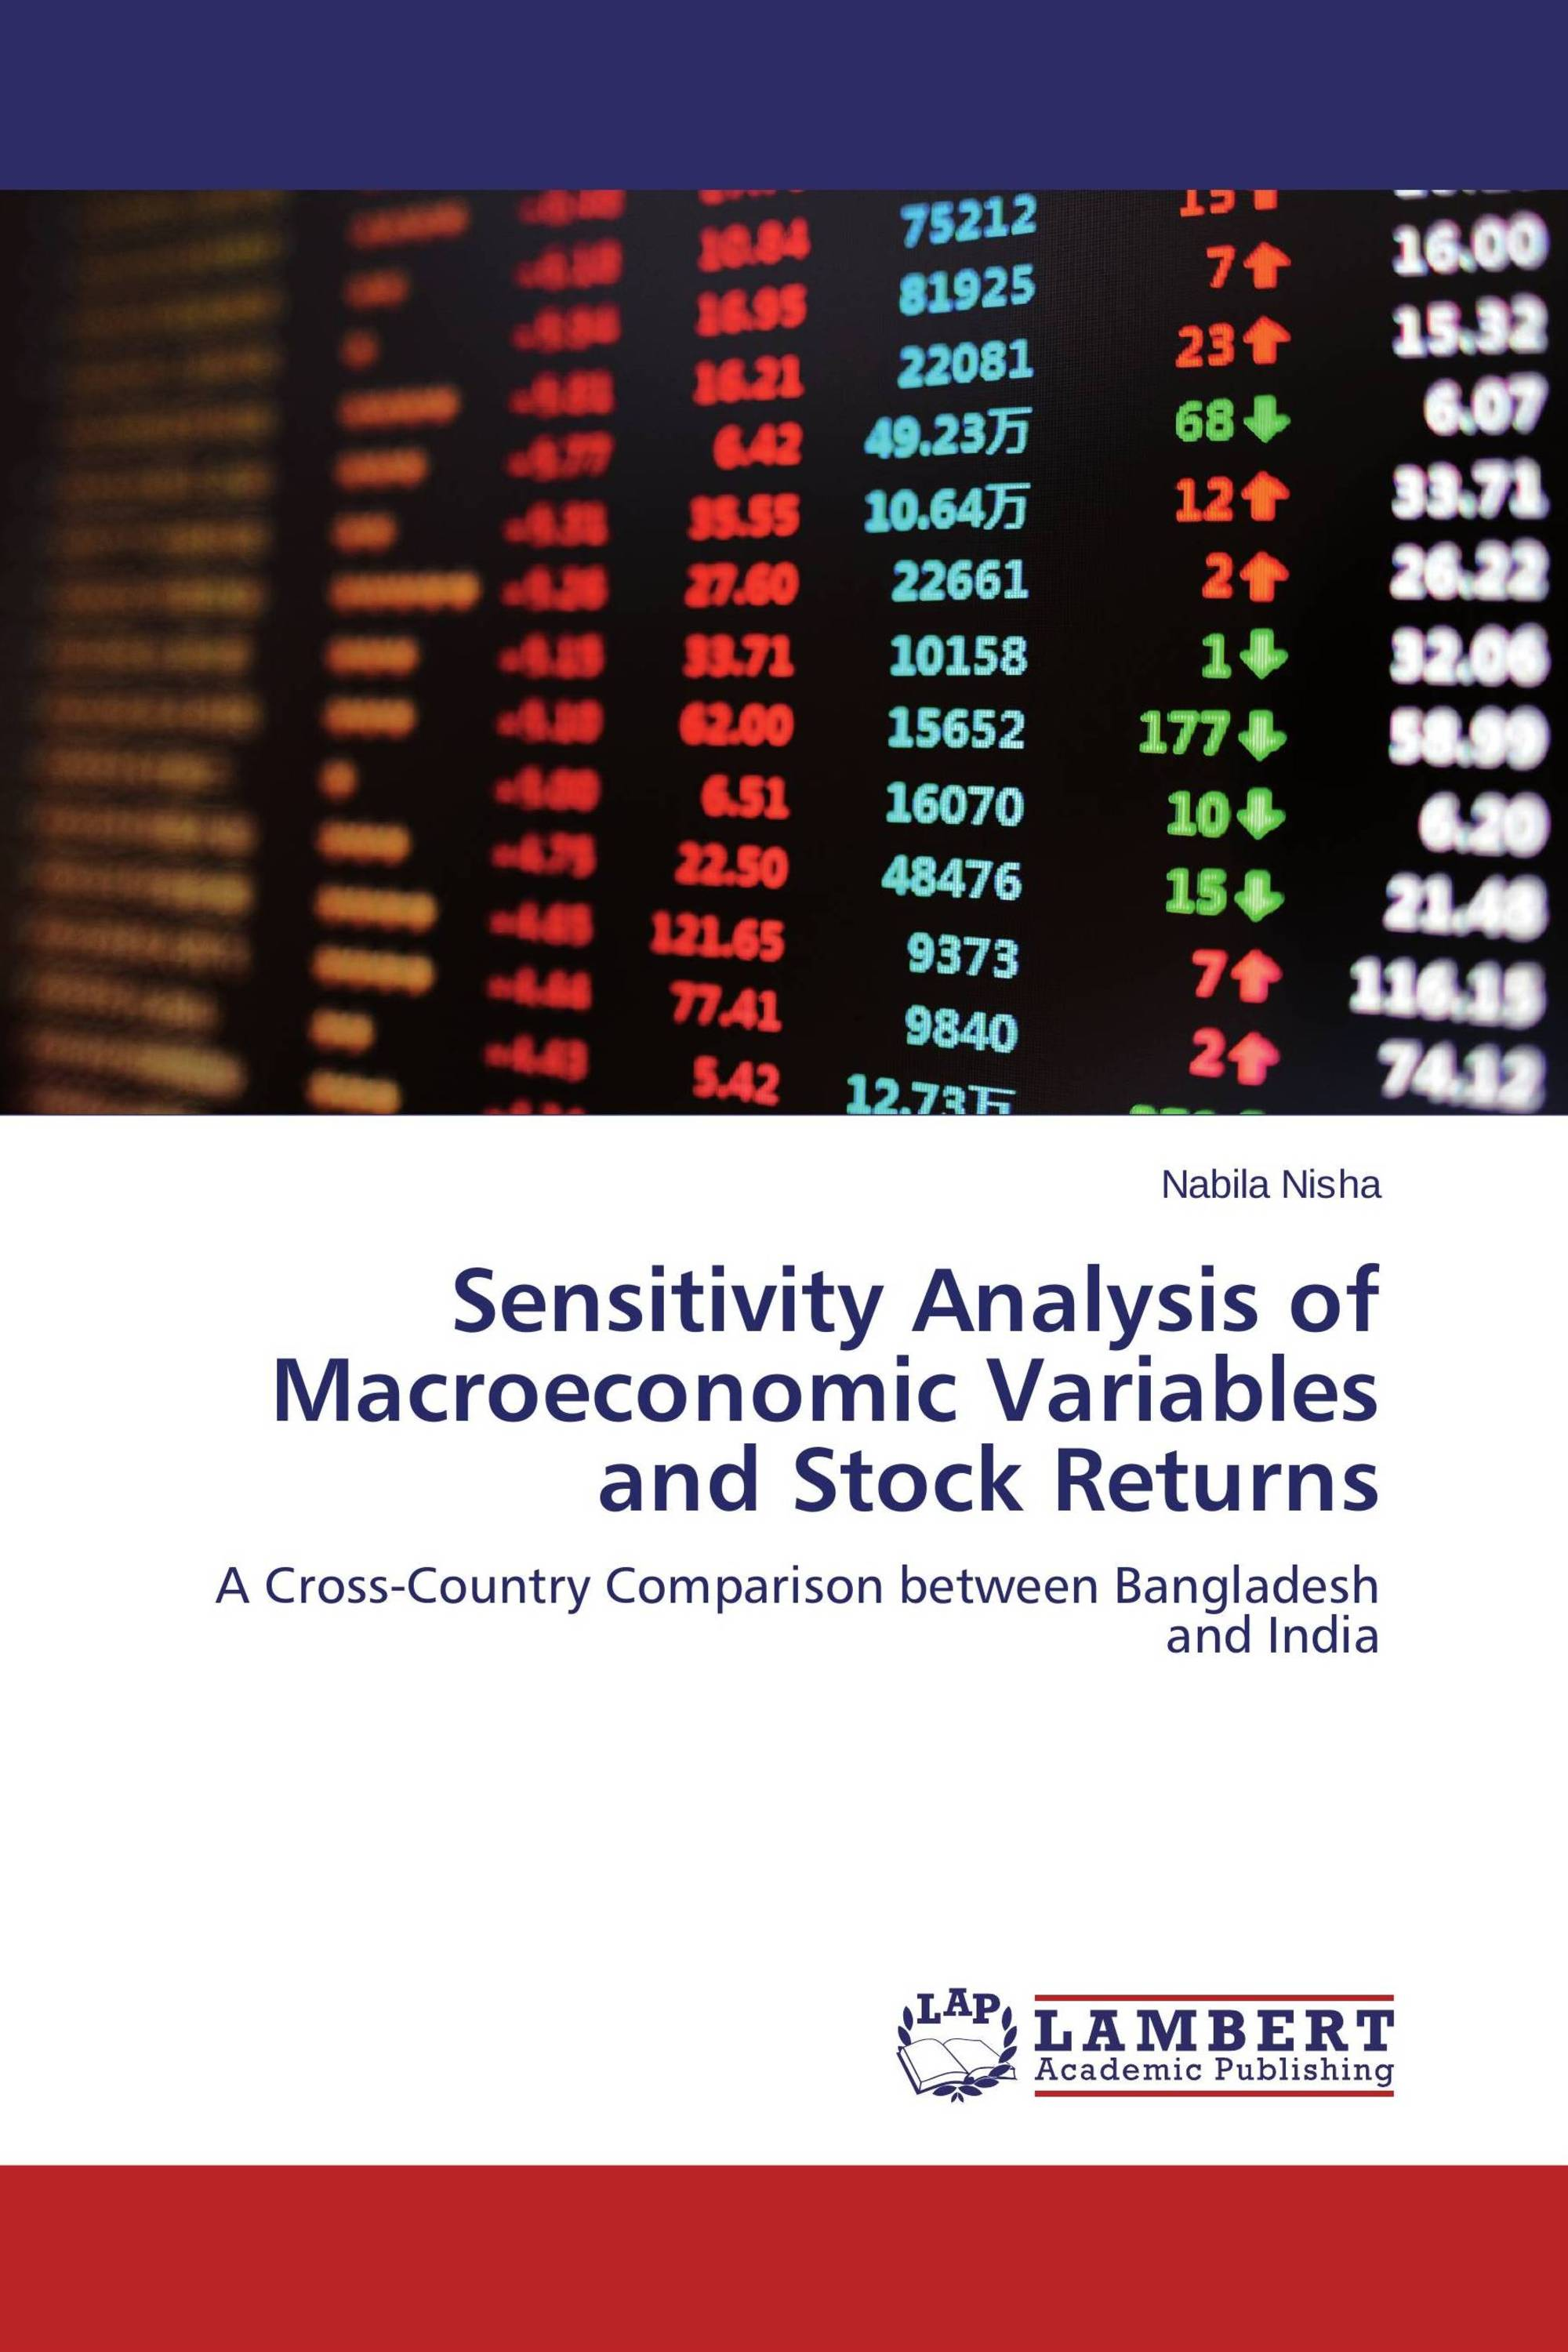 volatility of macroeconomic variables and stock returns 3 garch-midas model is that it allows us to link the daily observations on stock returns with macroeconomic variables, sampled at lower frequencies, in order to examine directly the.